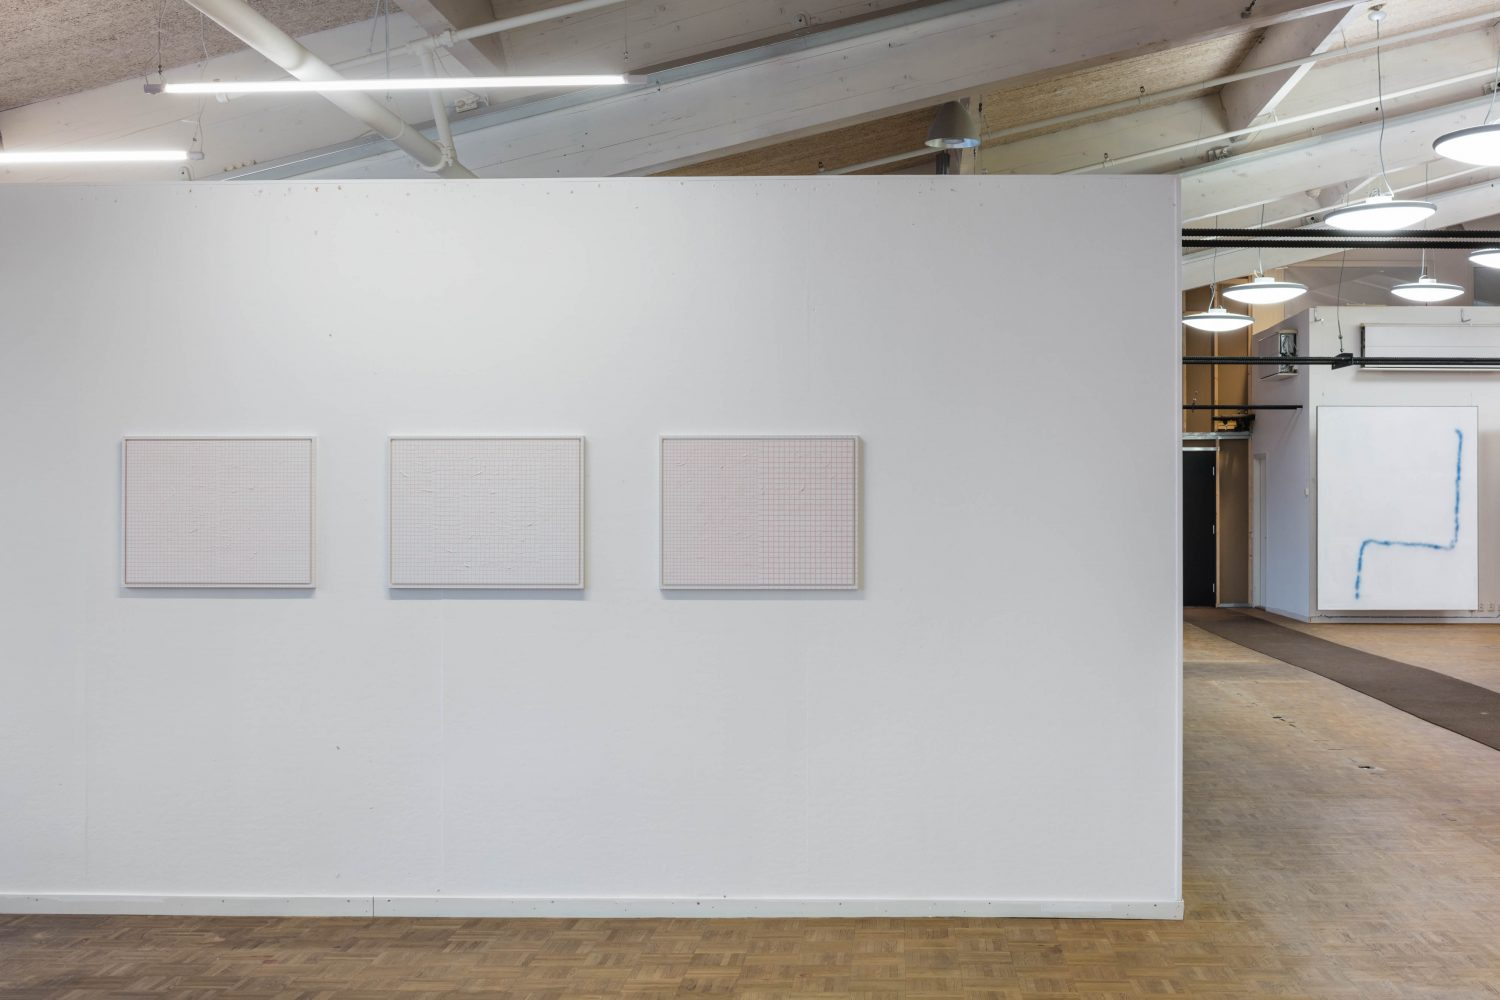 Installation view (pictured with David Ostrowski, far right)